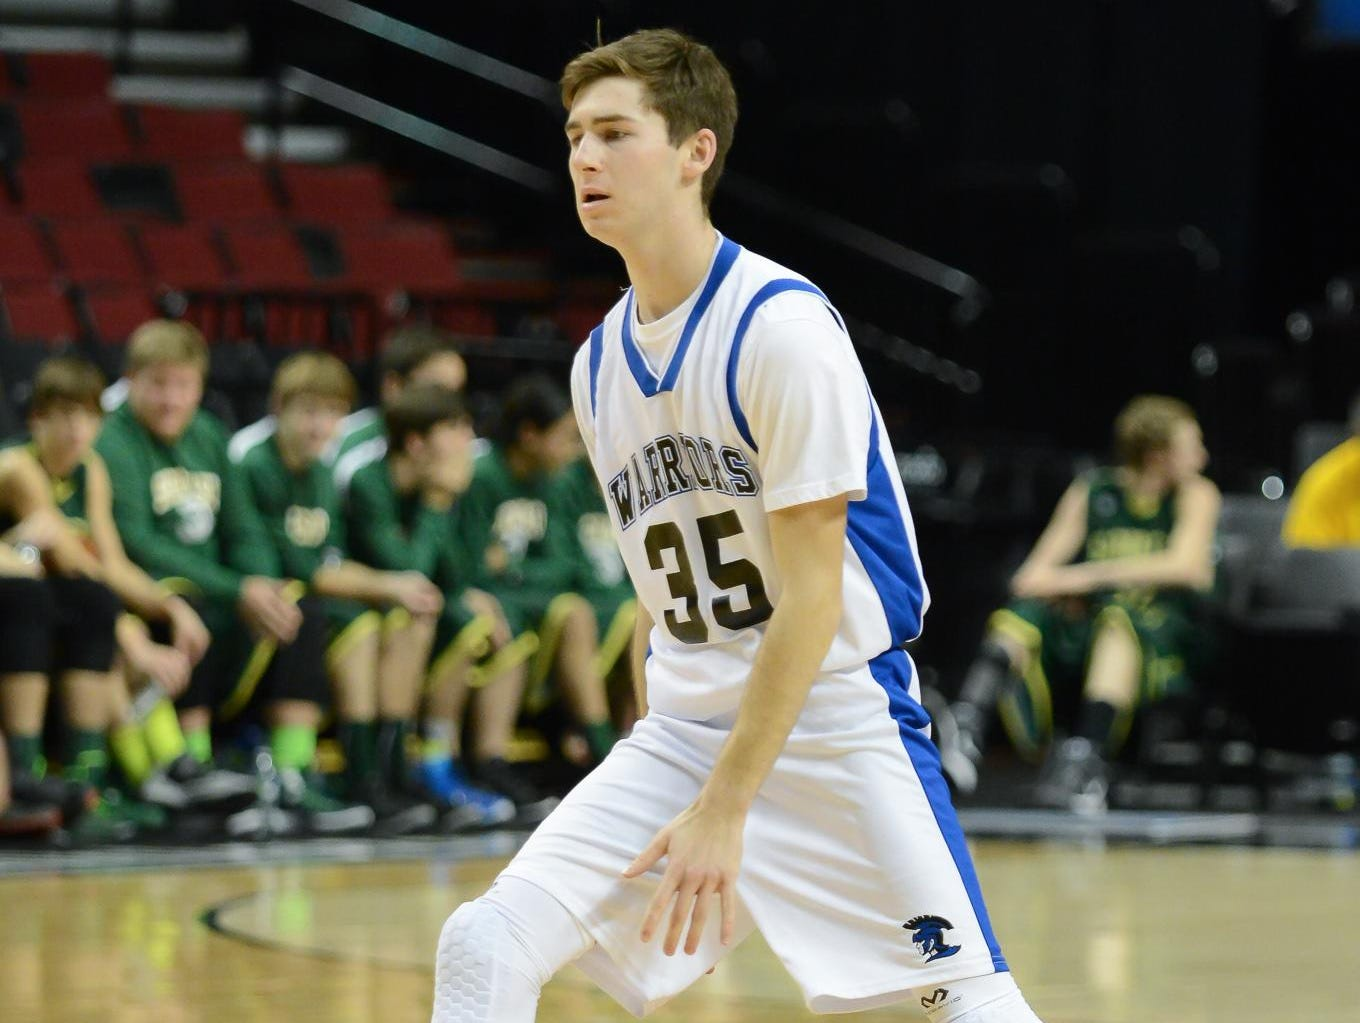 Willamette Valley Christian junior Cahldwell Peetz plays against South Wasco County at the Moda Center Wednesday.